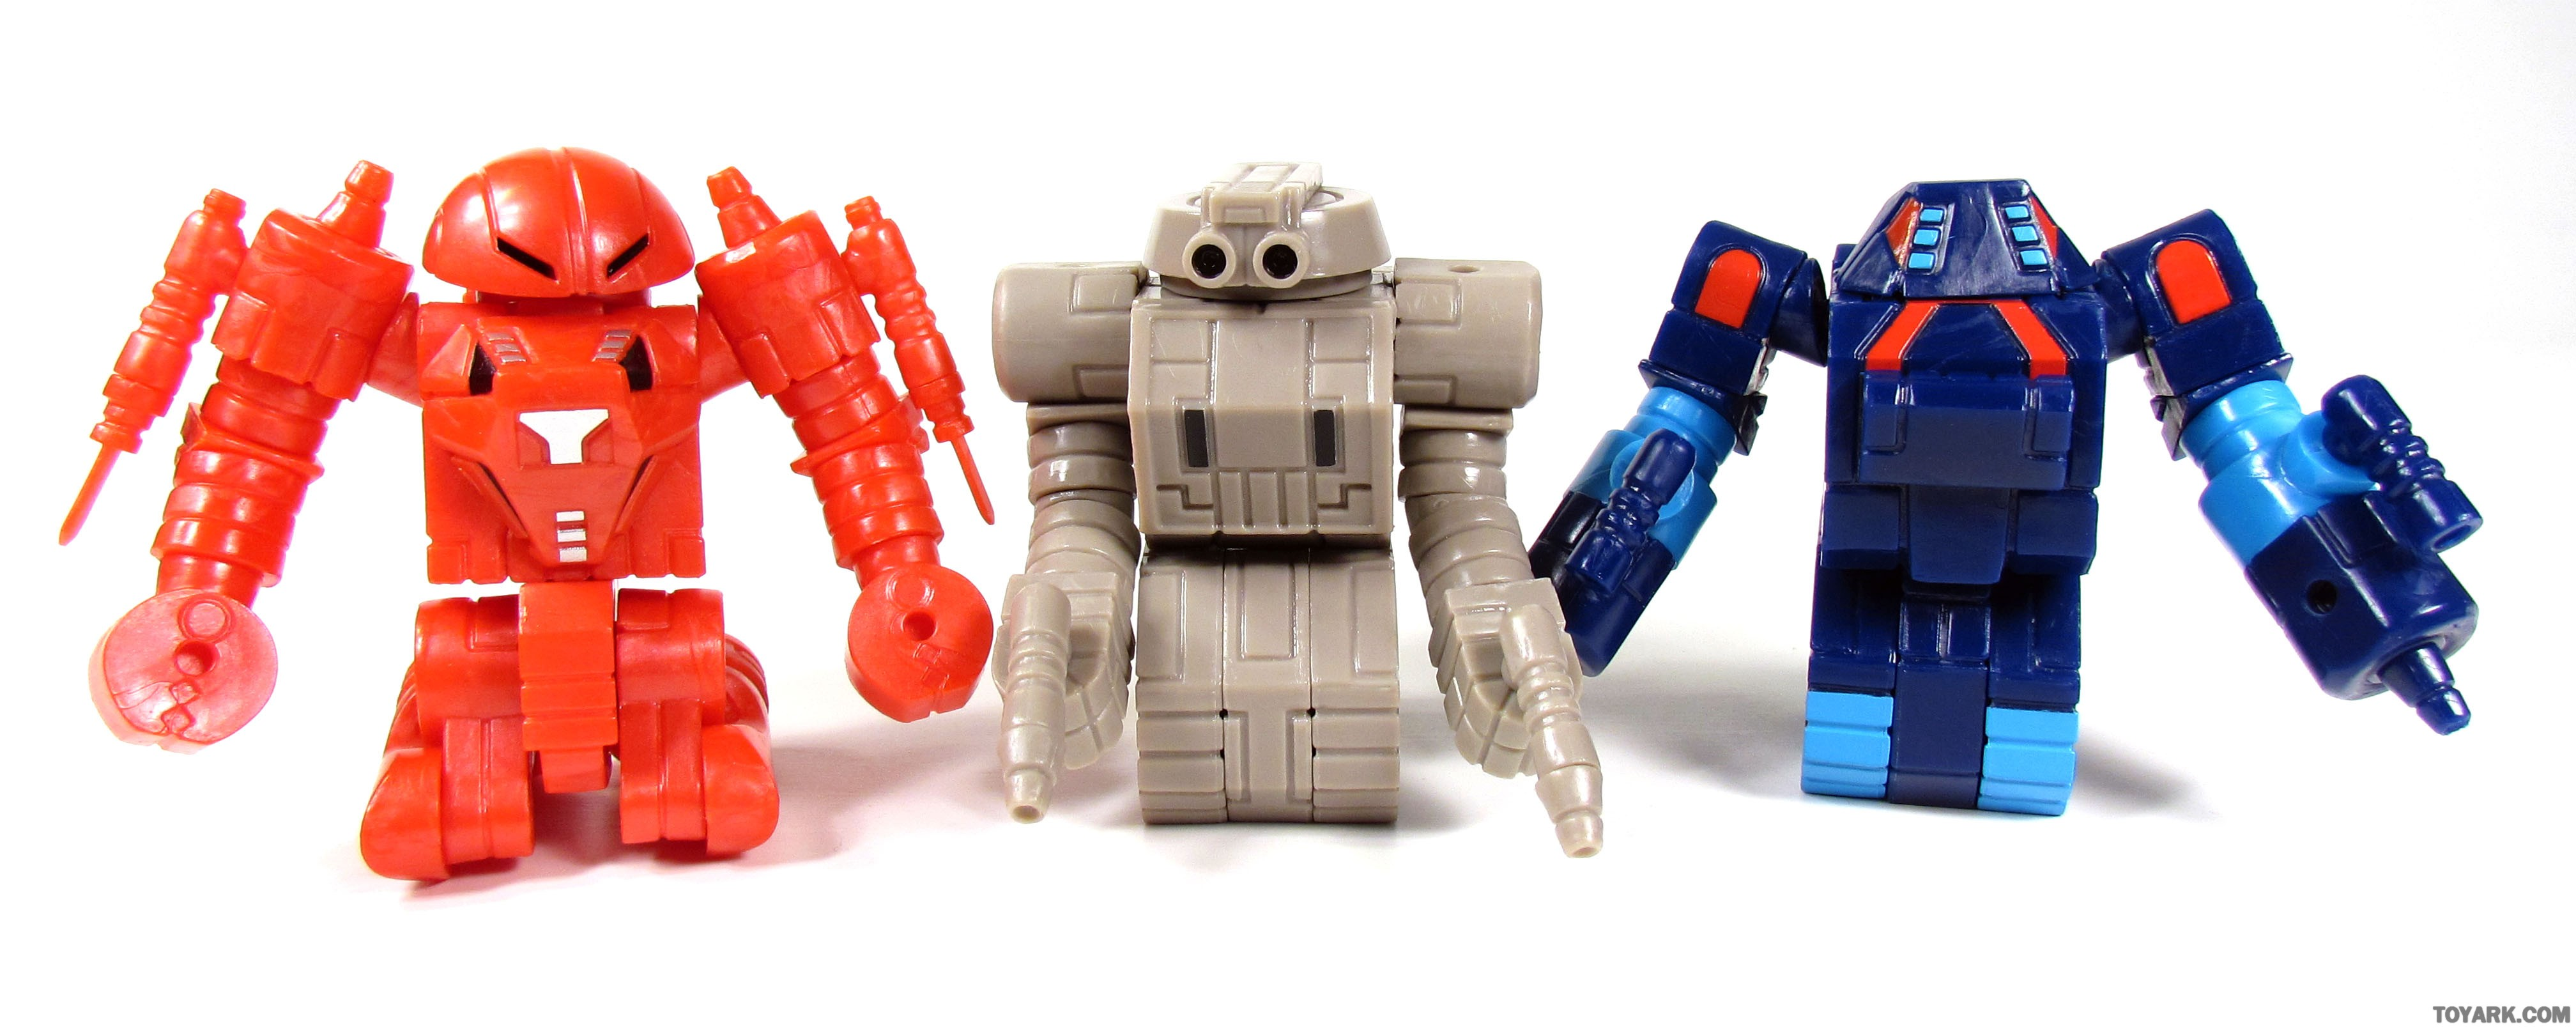 Robo Force Hun Dred and Enemy 015